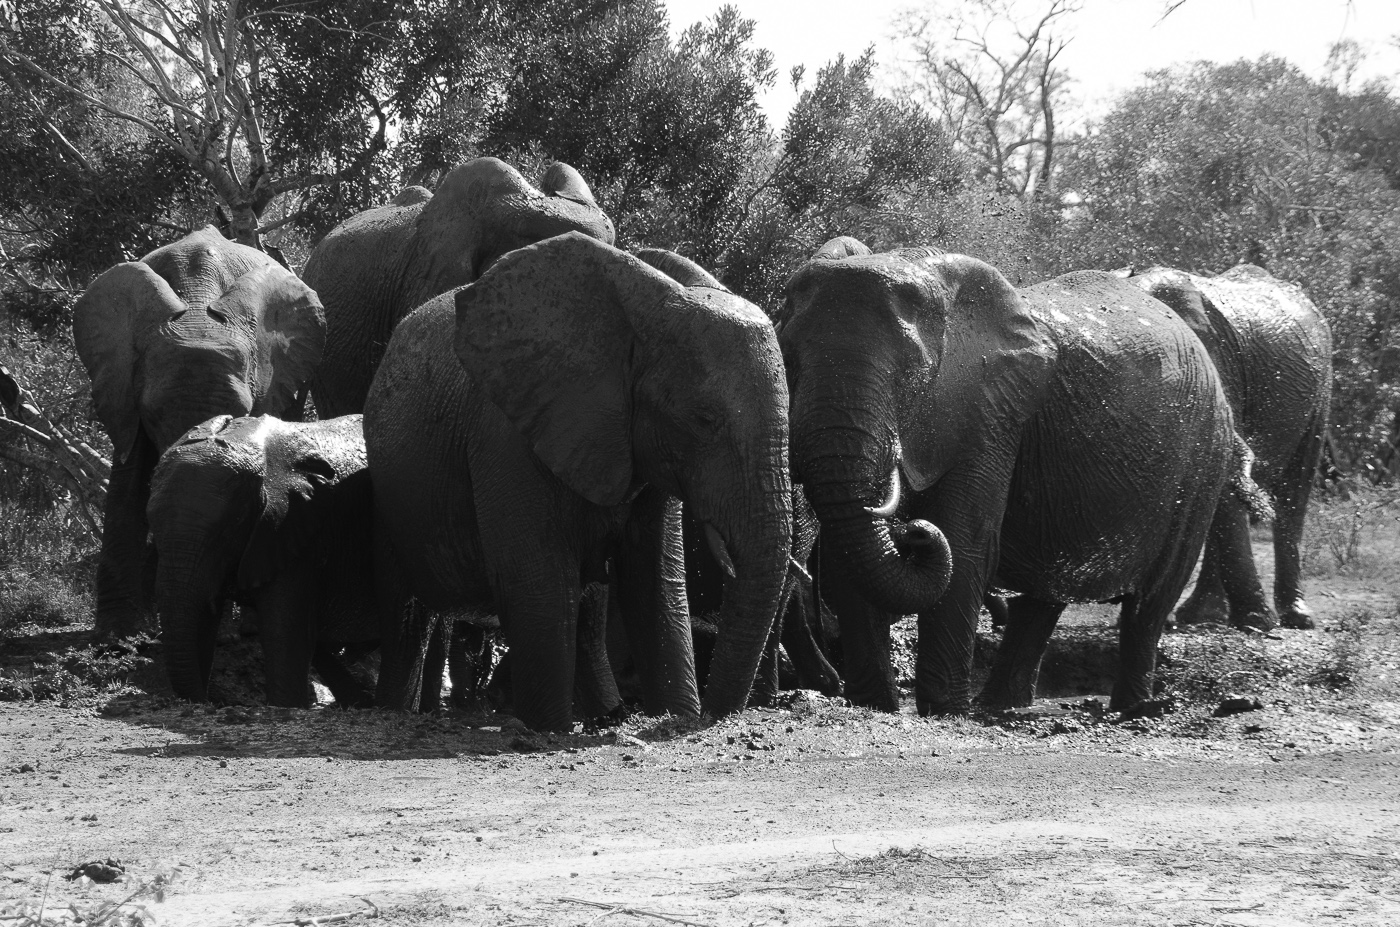 Ellephants wallowing. KP